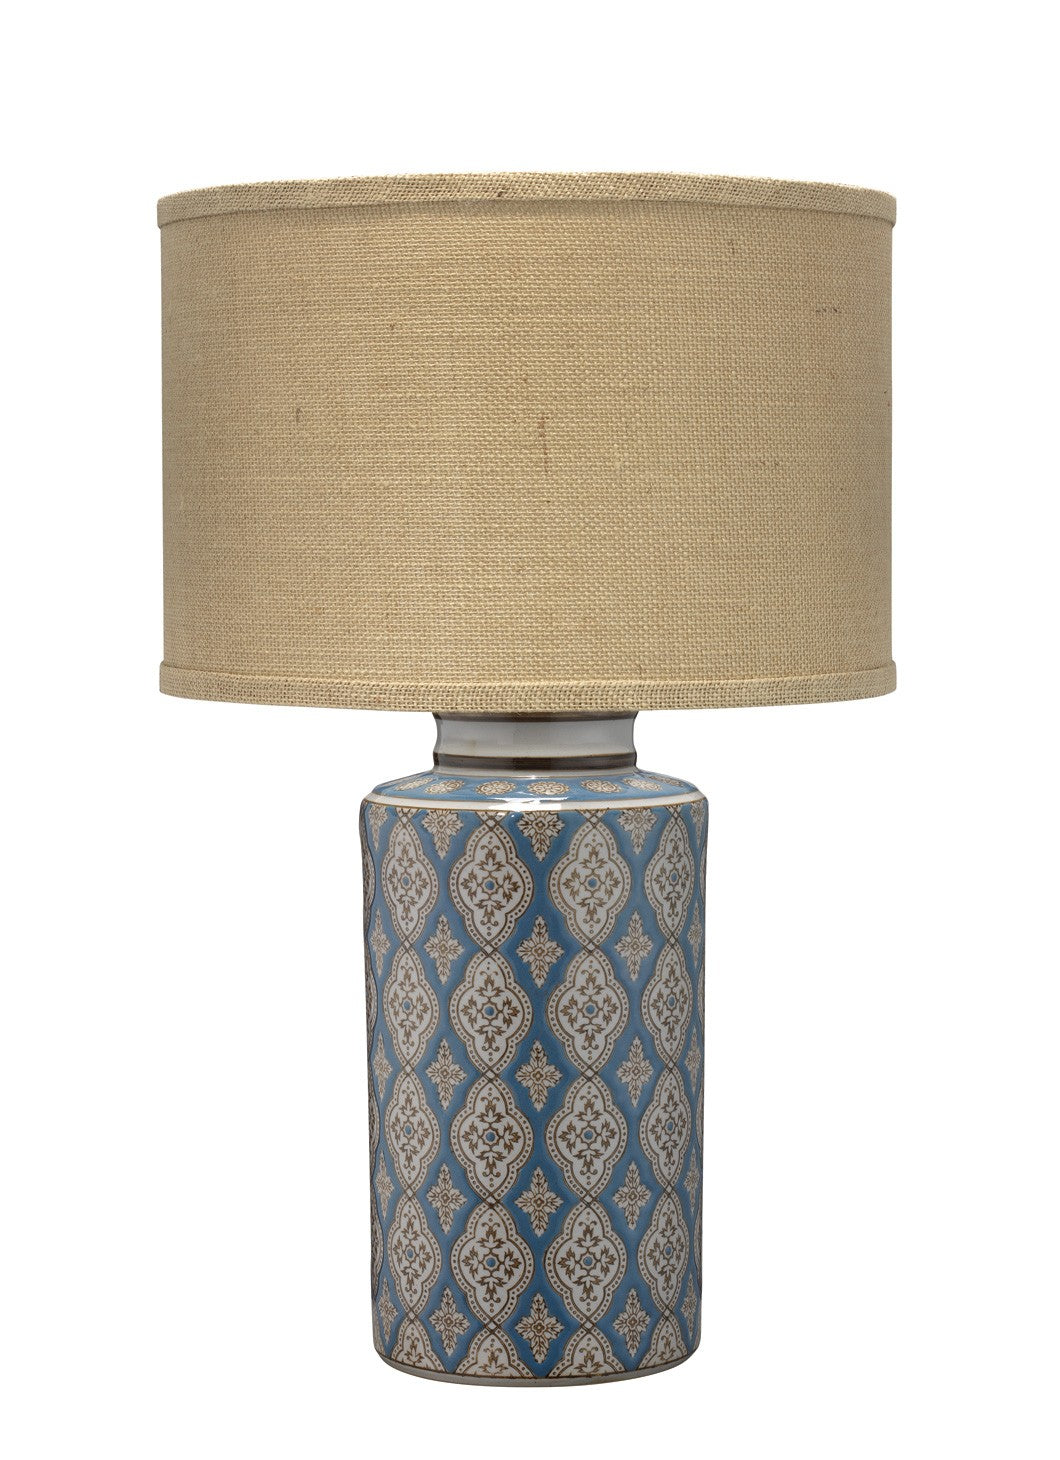 Jamie Young Verona Table Lamp and Shade